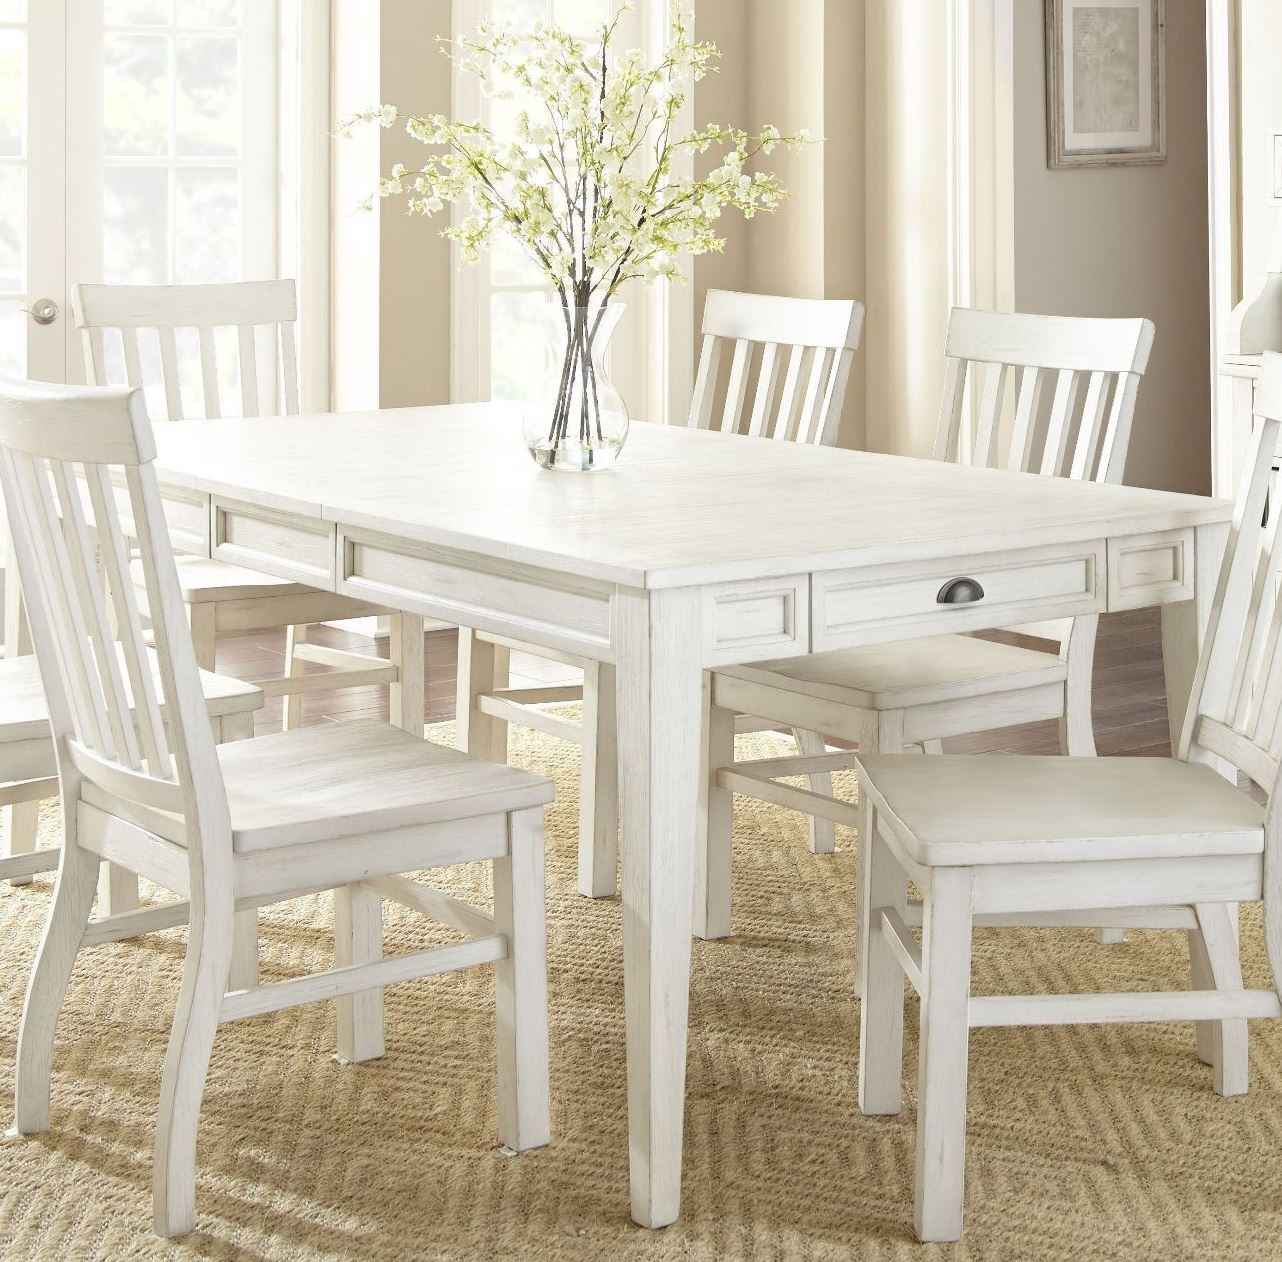 White Breakfast Table: Cayla Antique White Extendable Rectangular Dining Table